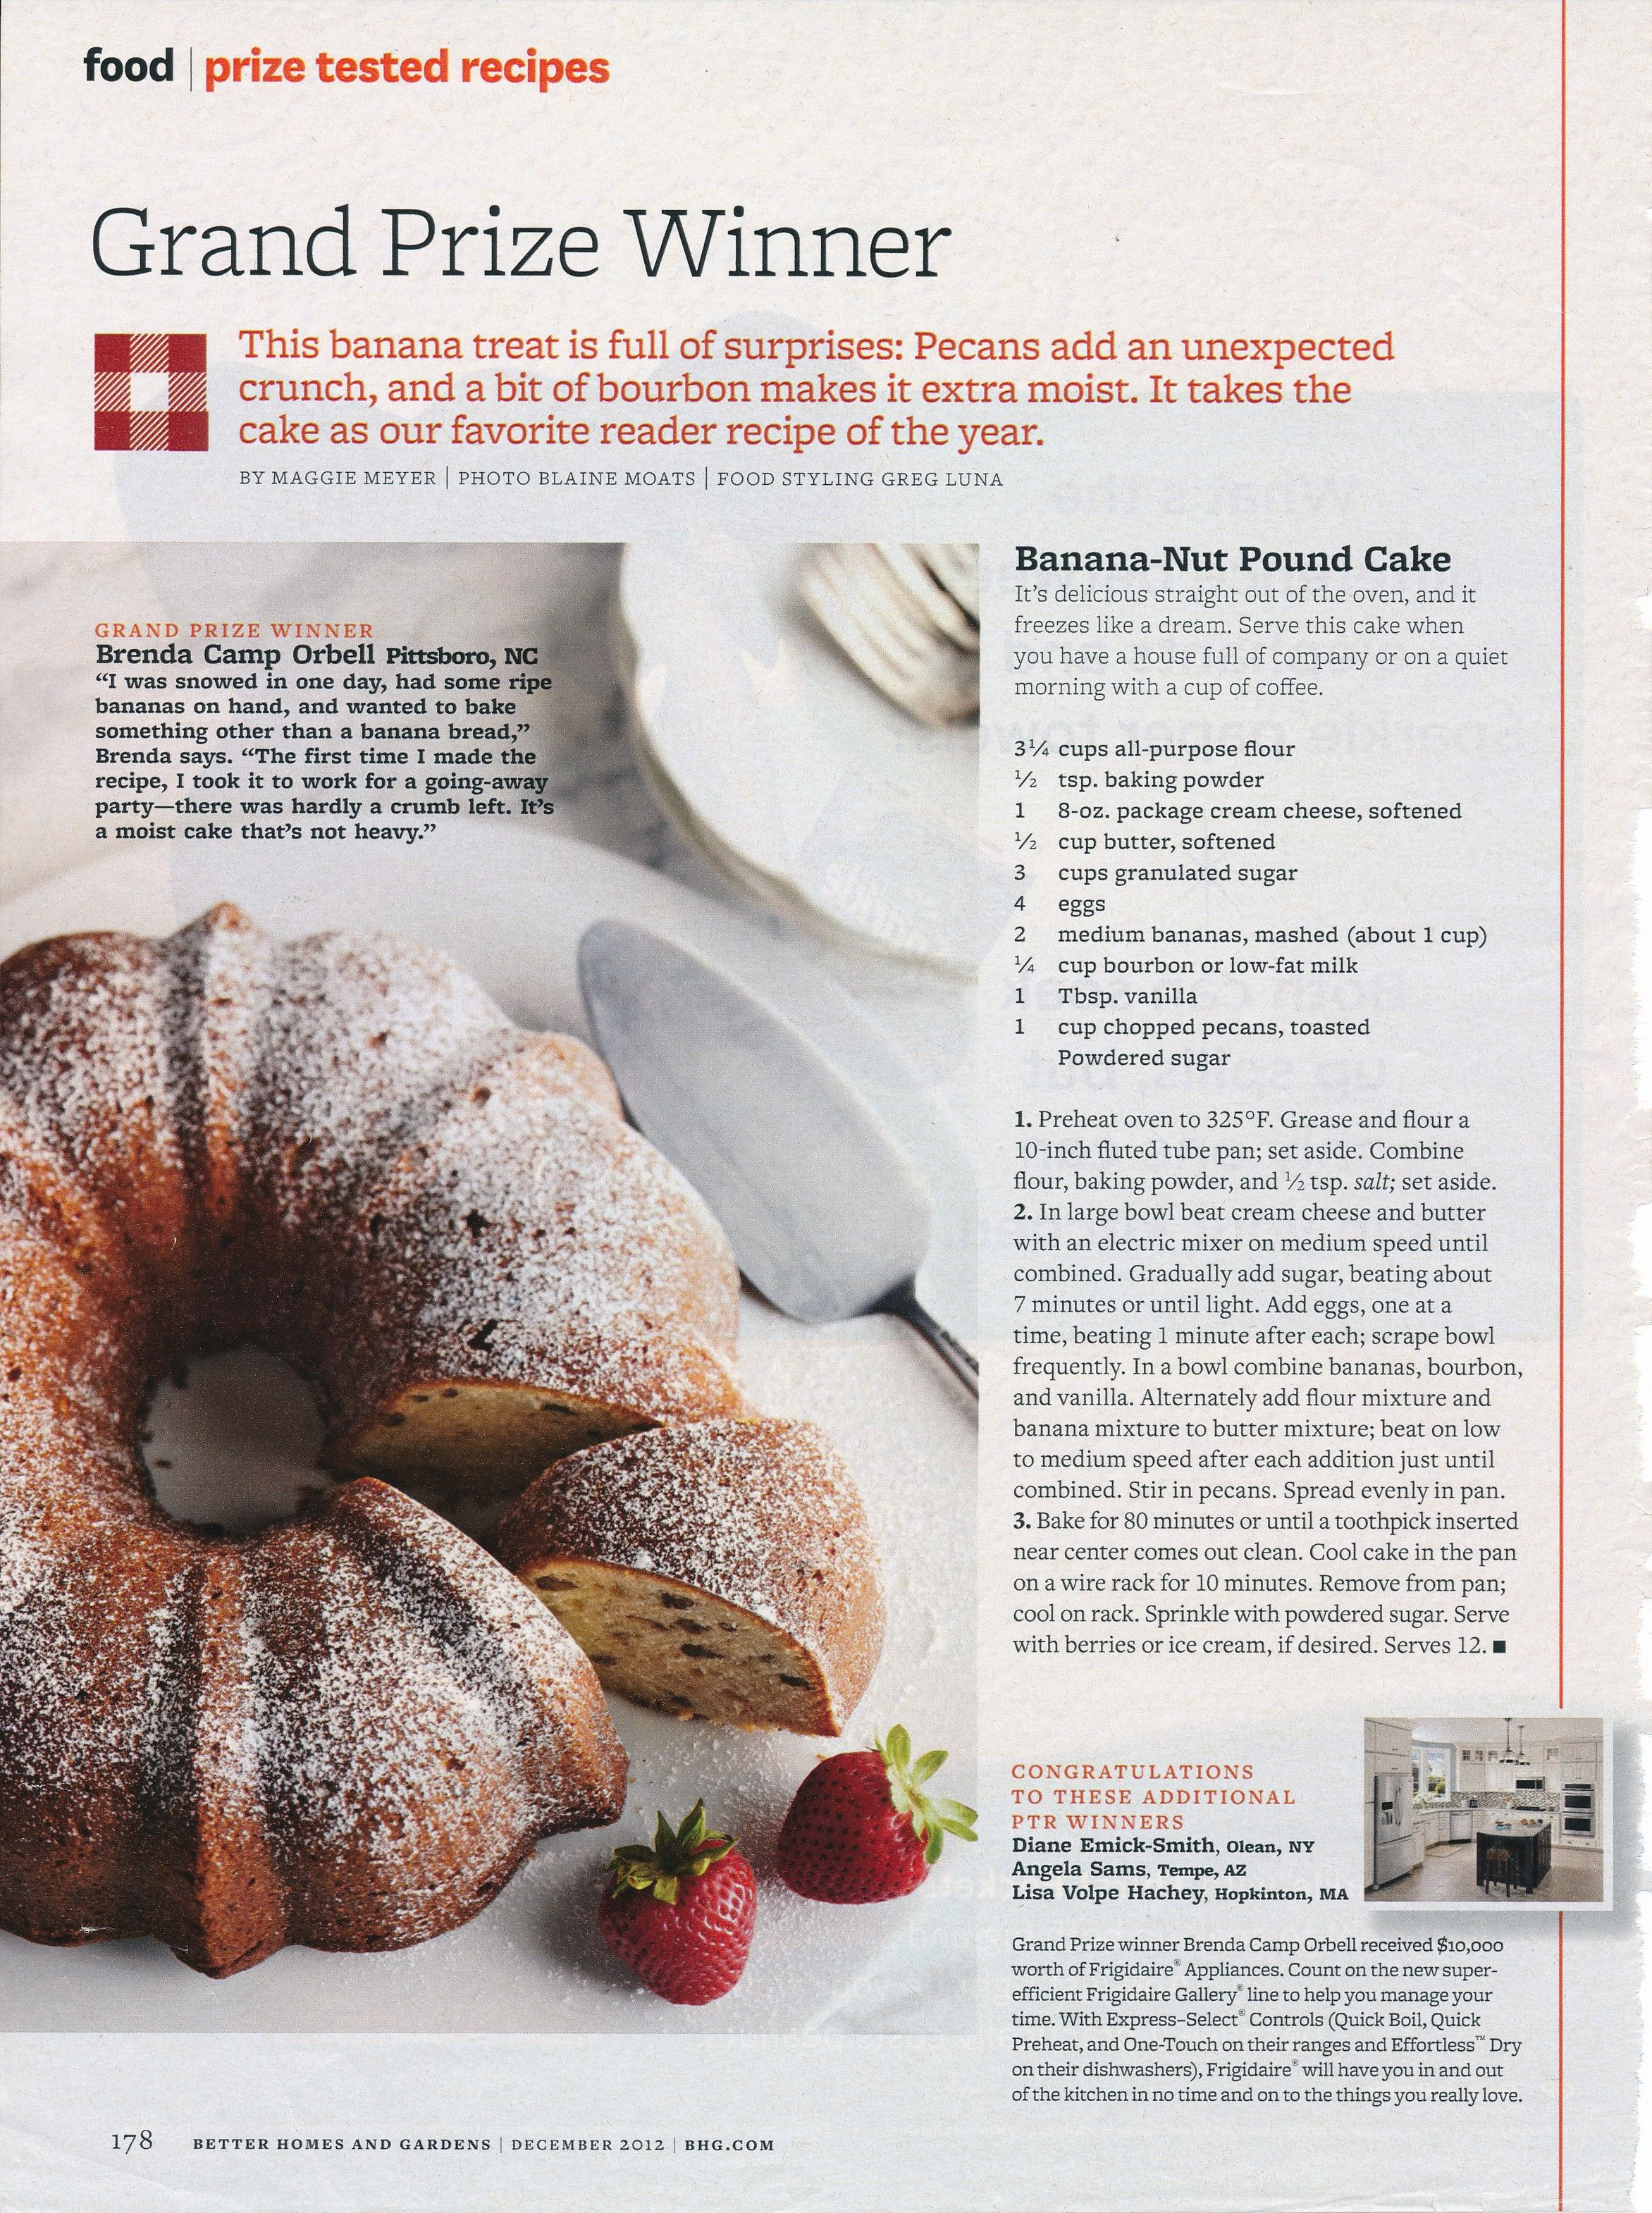 4041f6e26fd8c60cd3a96bf7cb8cd166 - Banana Nut Pound Cake Better Homes And Gardens